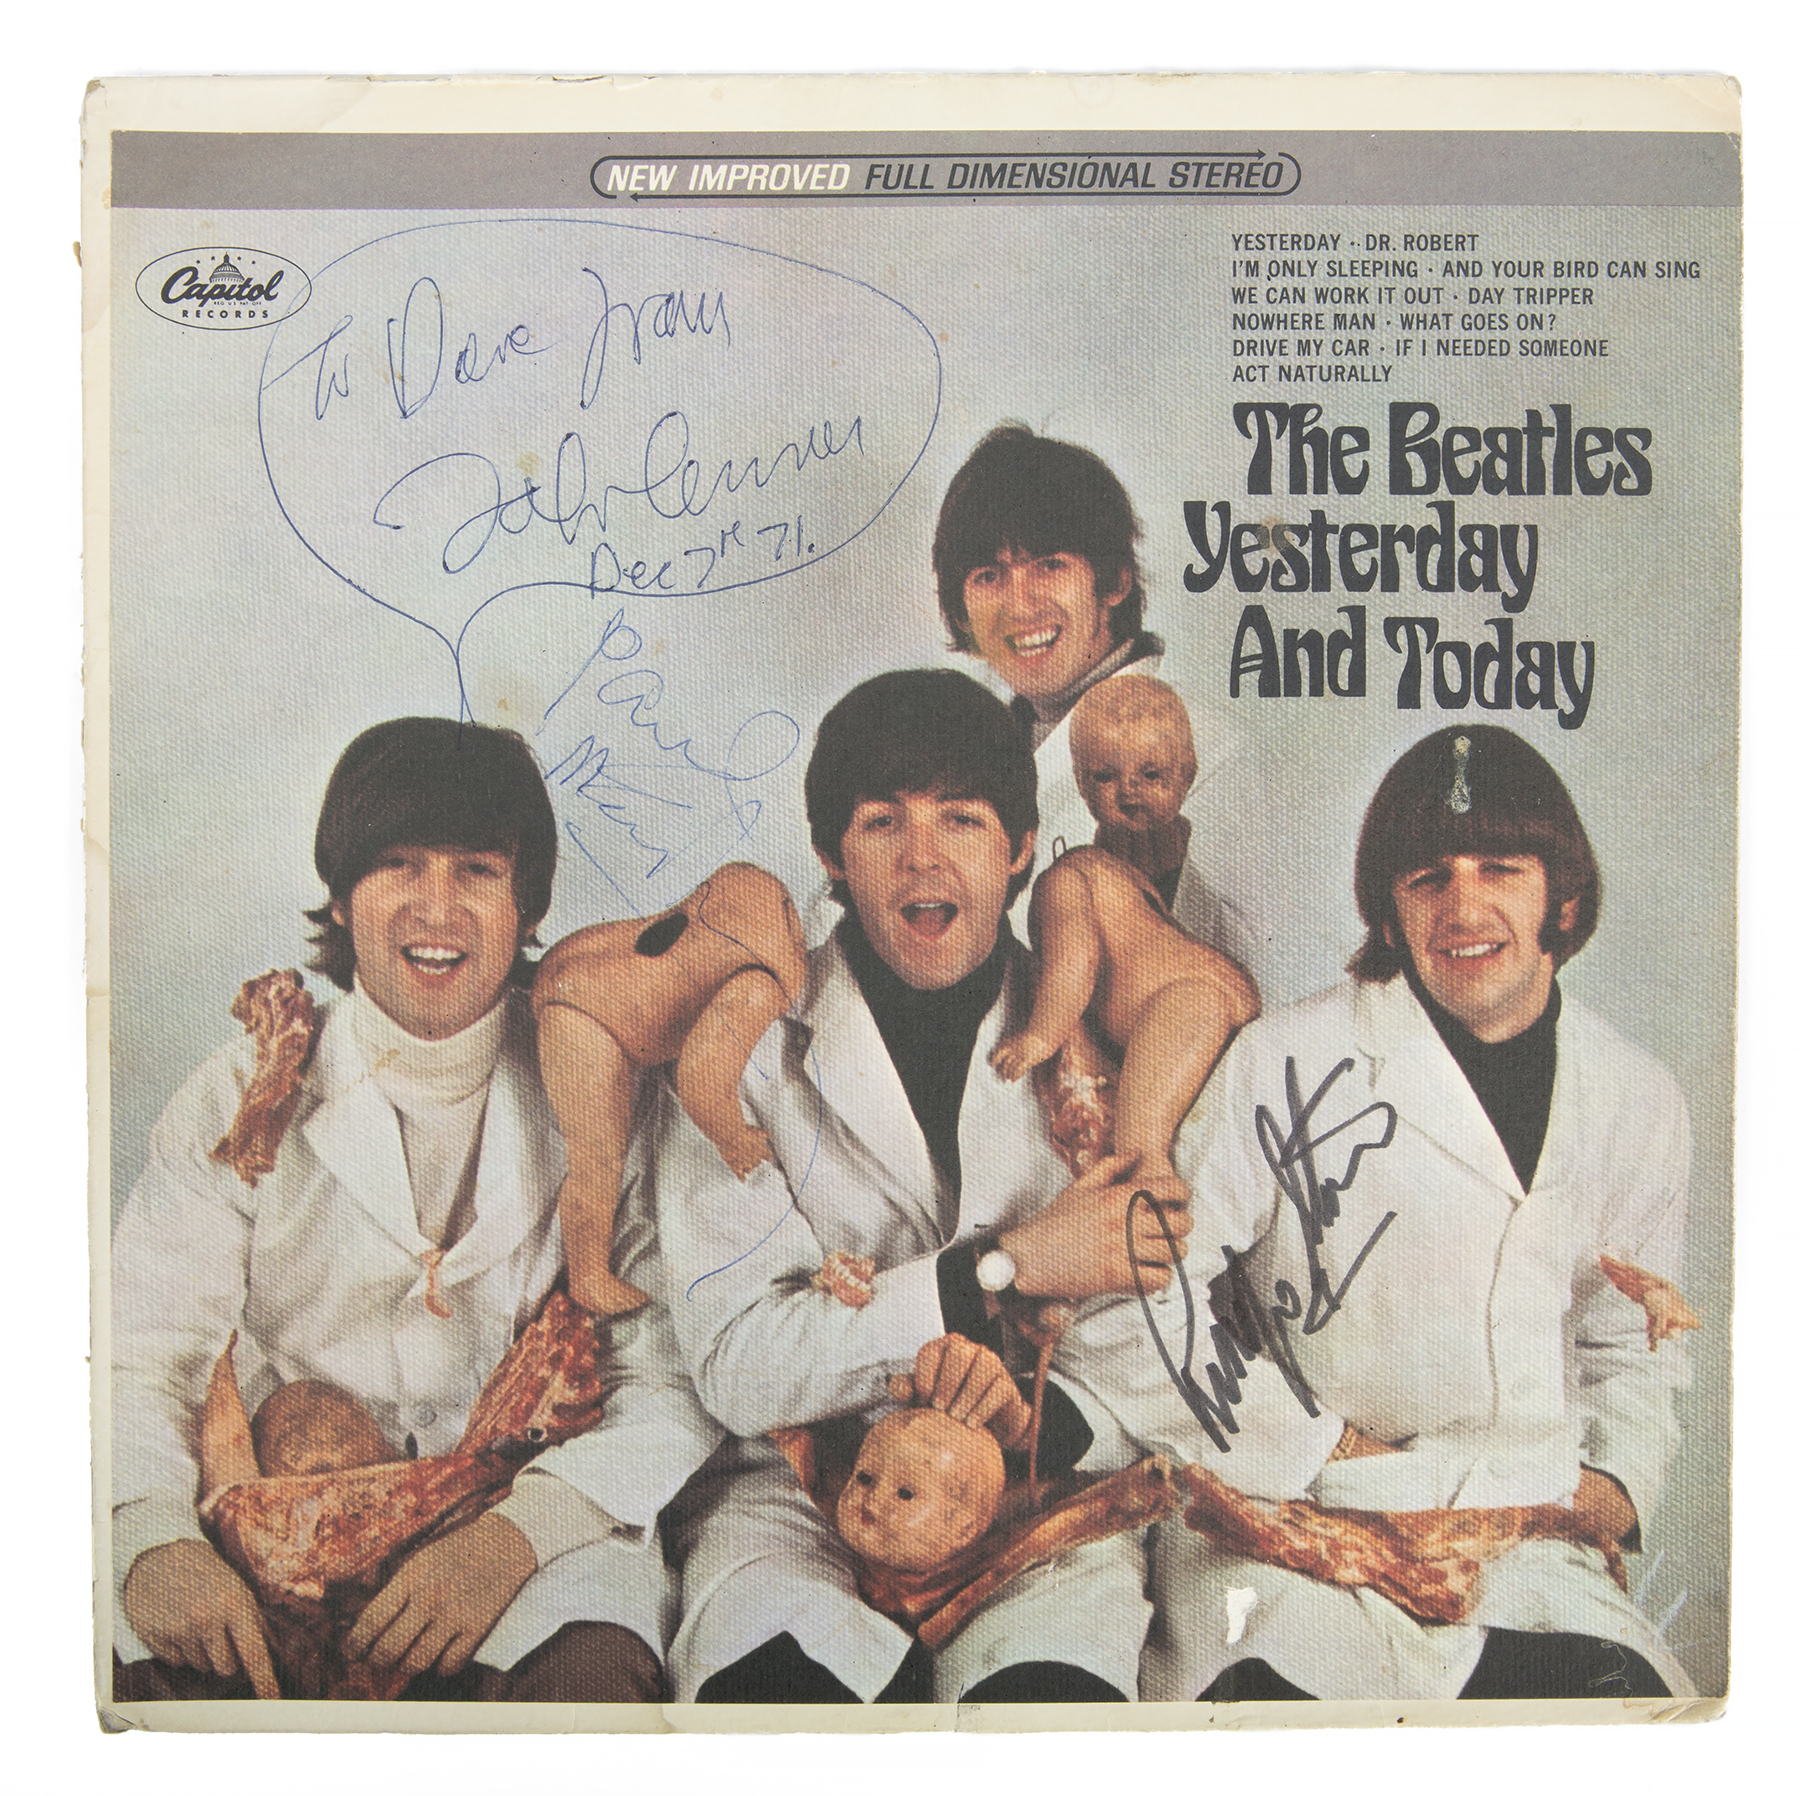 "John Lennon drew a speech bubble for the inscription on his copy of the infamous Beatles ""Butcher cover"". The image shows McCartney, Lennon, Harrison, and Starr in white lab coats and draped with dismembered dolls and raw meat. McCartney signed it below Lennon's speech bubble. Starr signed the area over his right shoulder."